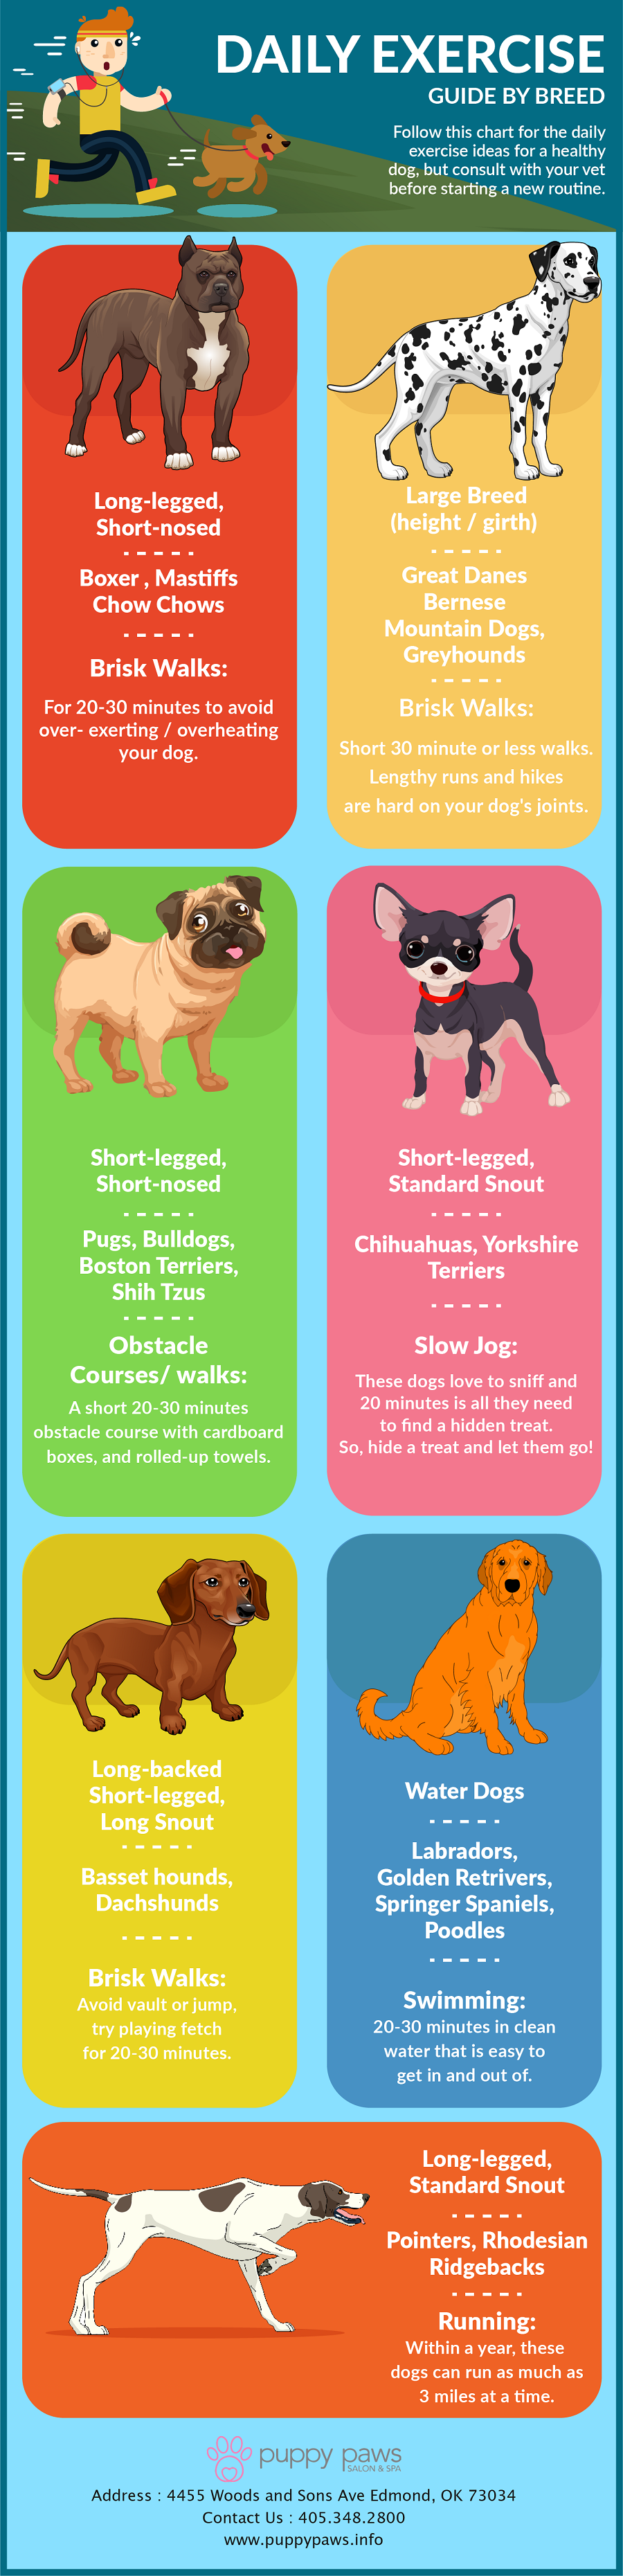 Daily Exercise Guide By Breed